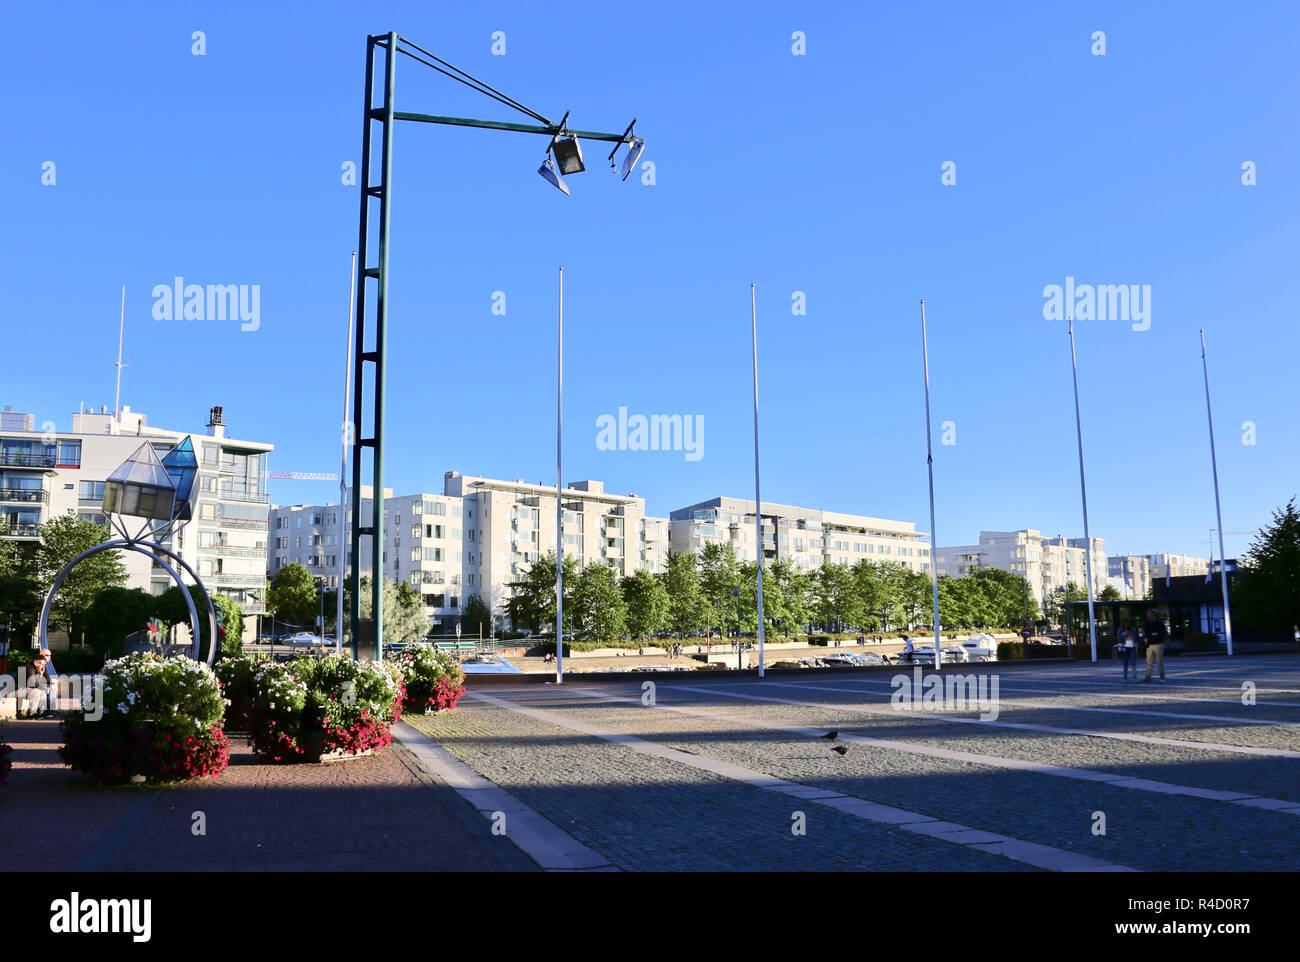 Ruoholahti (Helsinki, the capital of Finland) plaza on summer: residential area next to canal from Bay of Finland, flowers and flagpoles - Stock Image